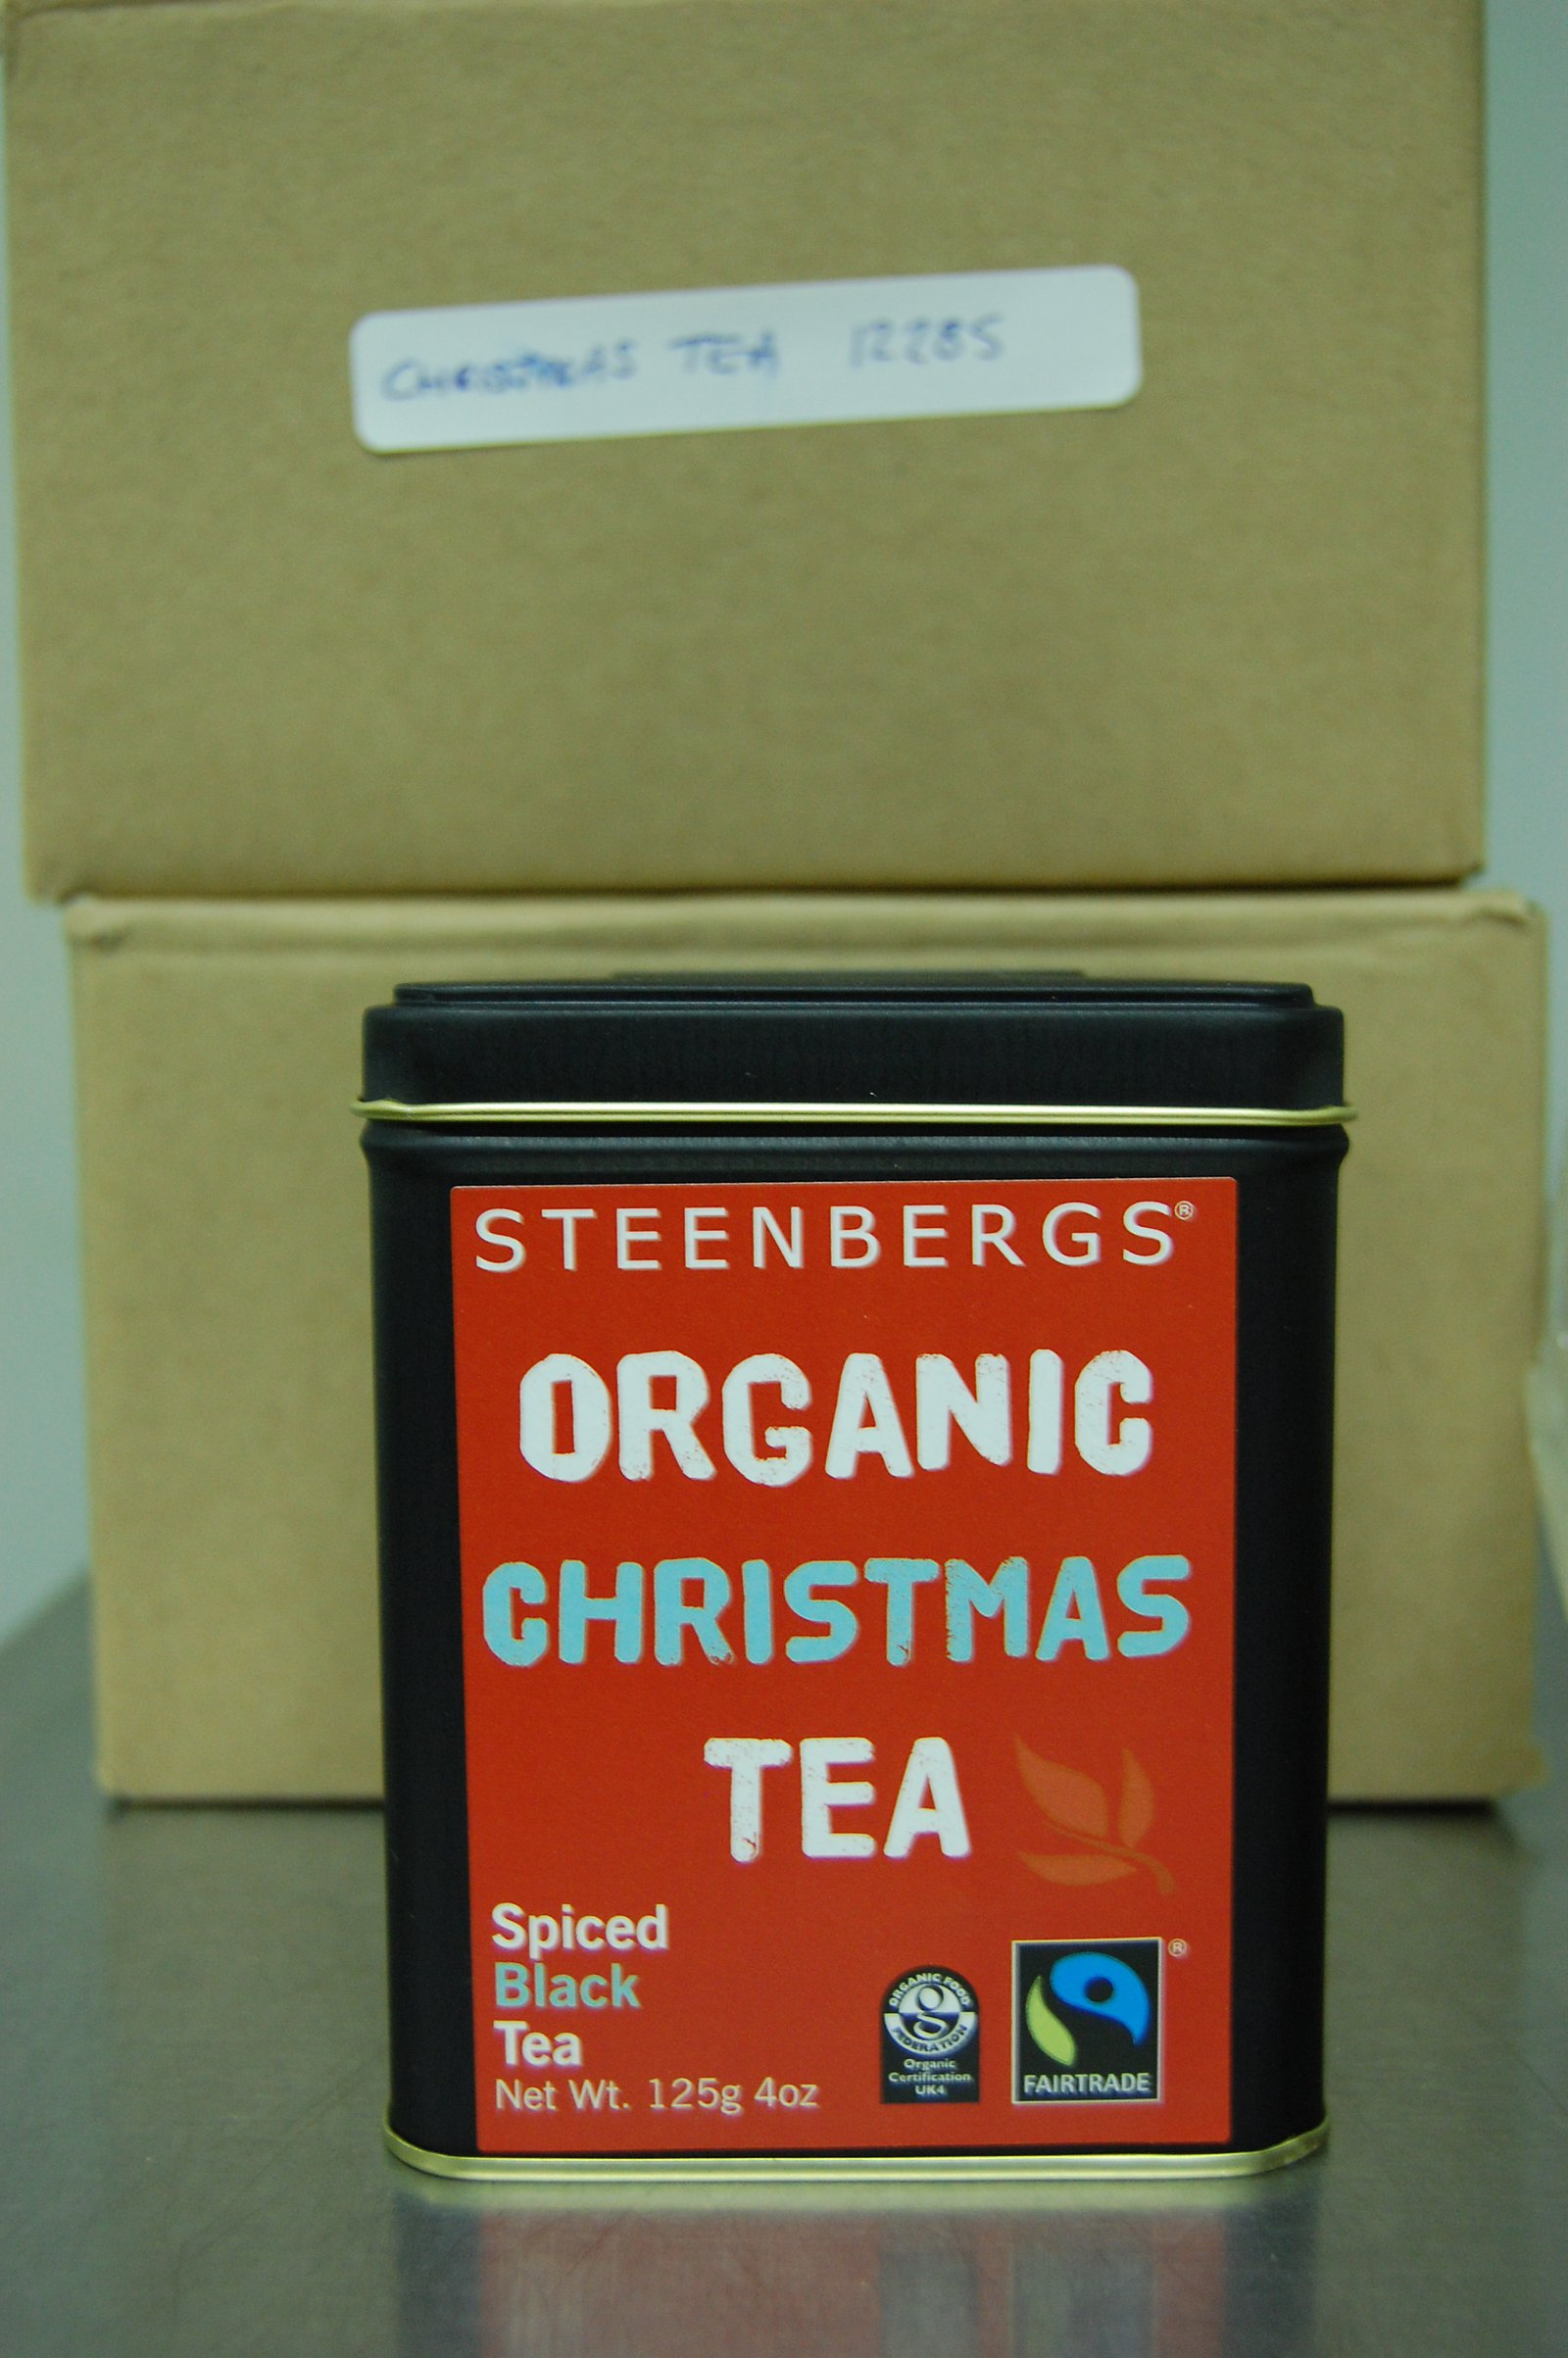 Steenbergs Organic Fairtrade Christmas Tea